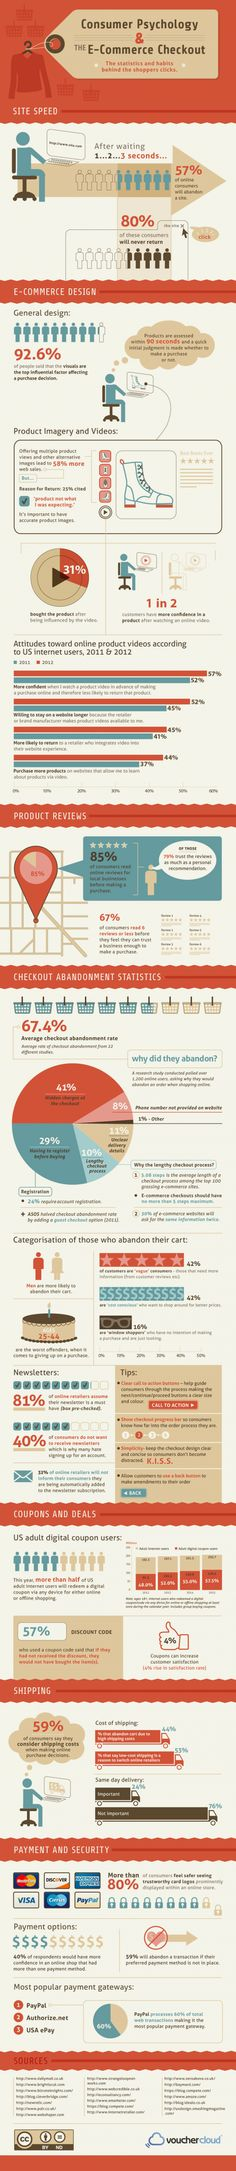 Consumer Psychology & the #eCommerce Checkout